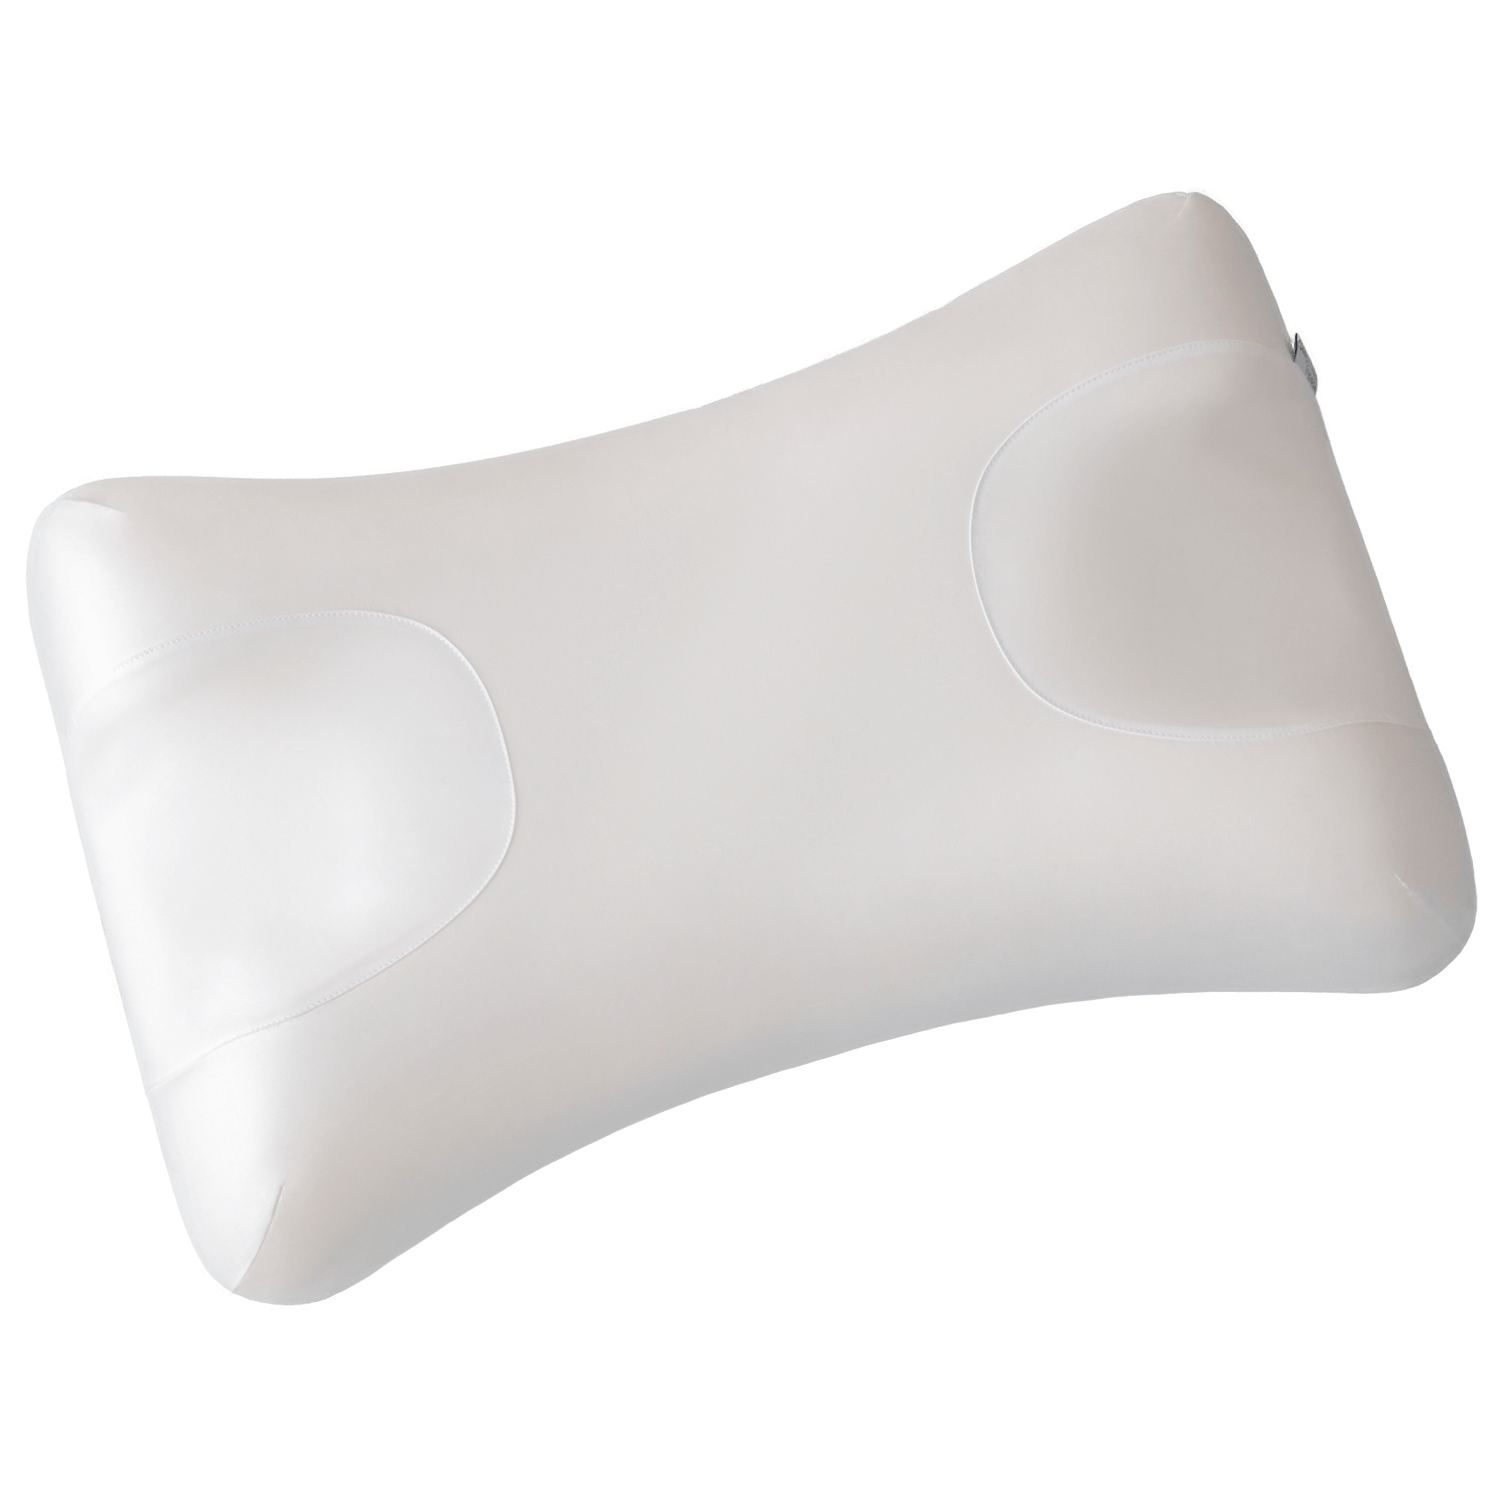 Anti-Aging Pillow that fights sleep wrinkles